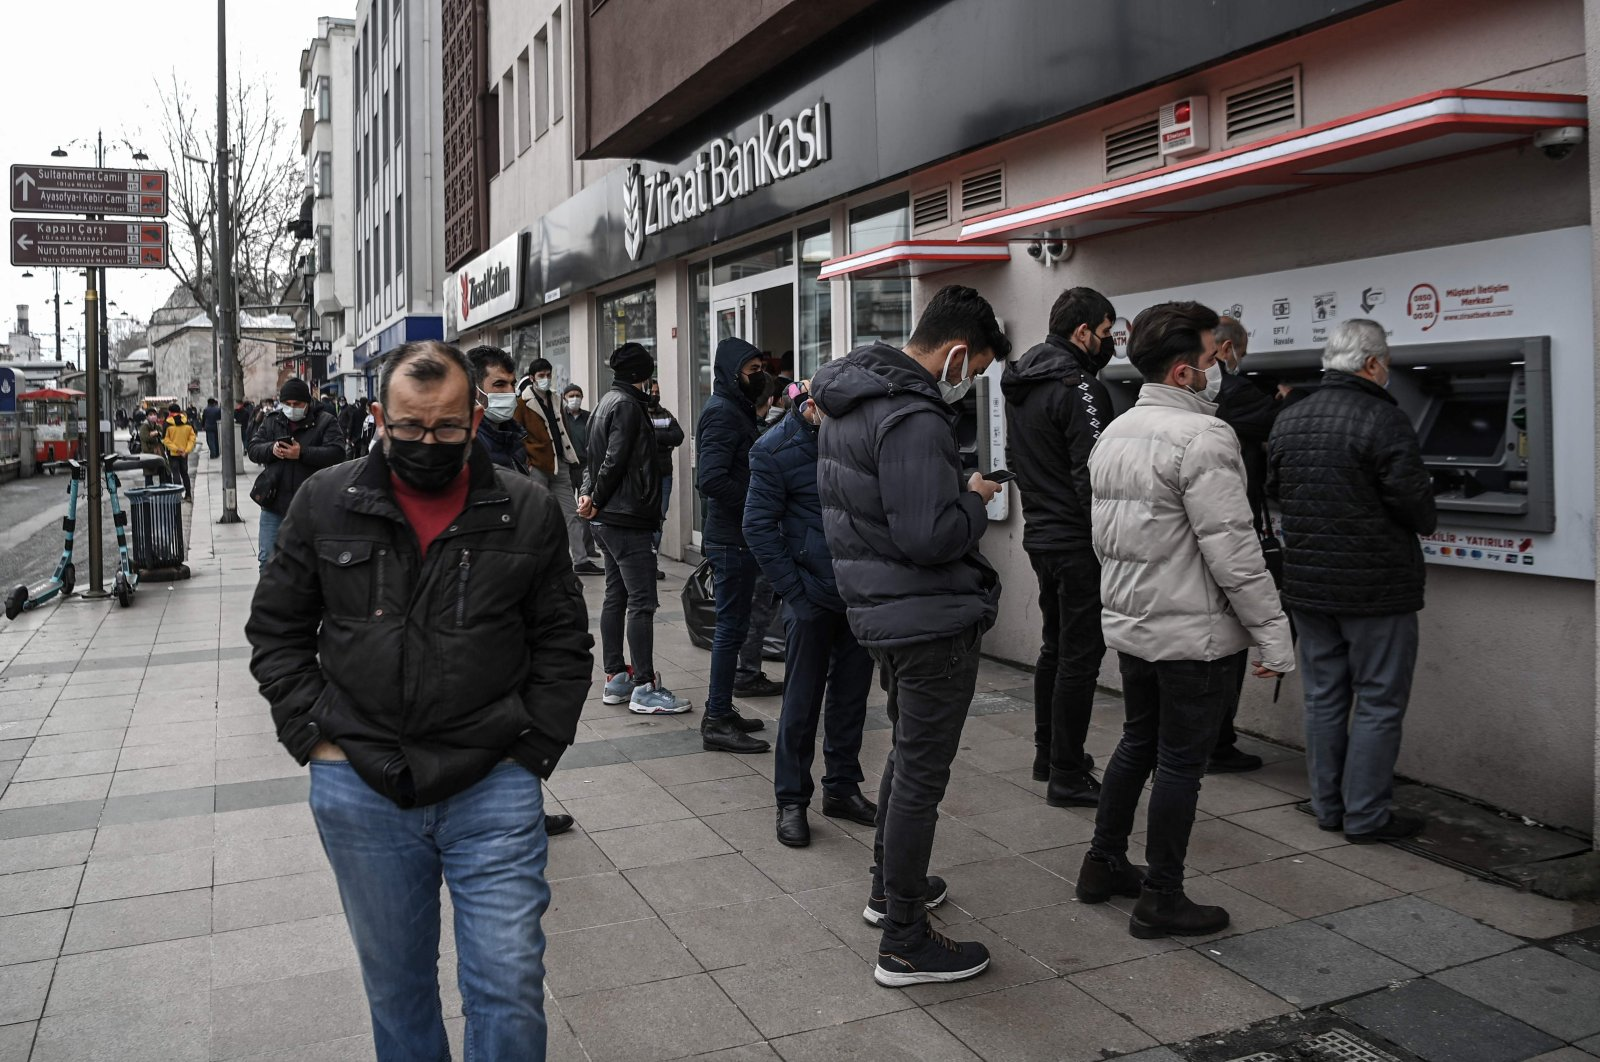 Customers wait in line to use ATMs of a Turkish bank near the Grand Bazaar in Istanbul, Turkey, March 22, 2021. (AFP Photo)